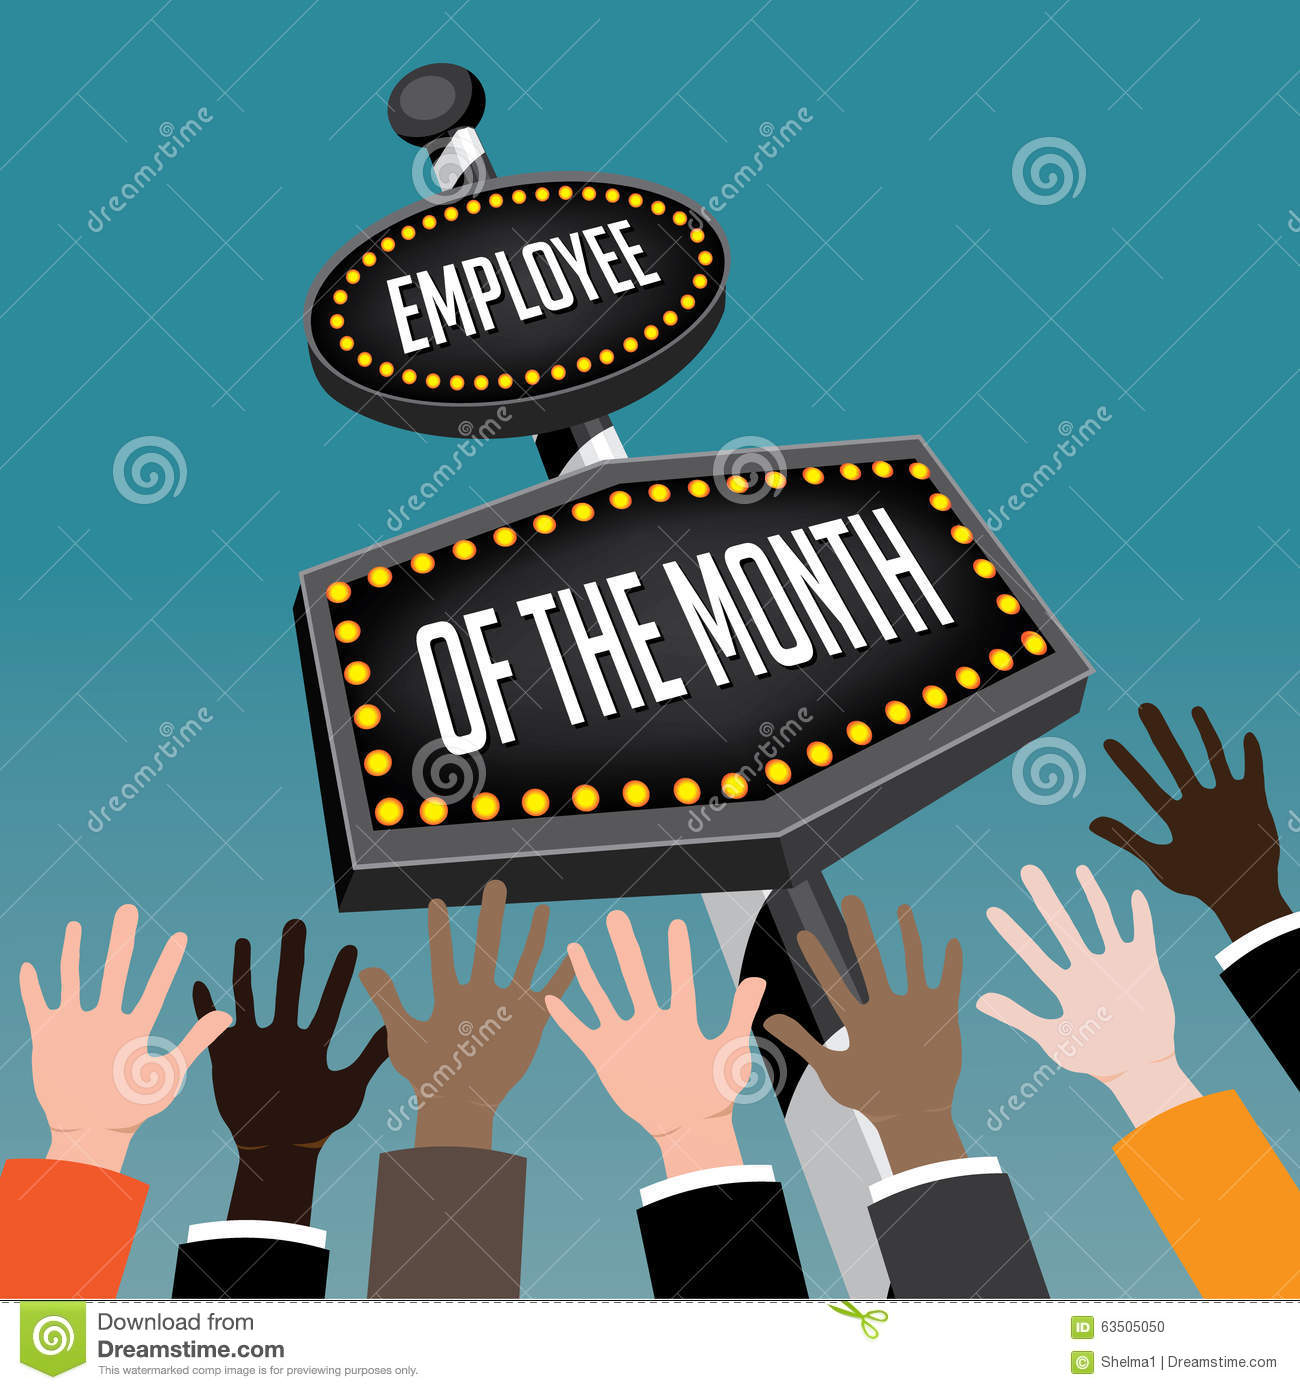 Employee Of The Month Retro Sign Stock Vector - Image: 63505050